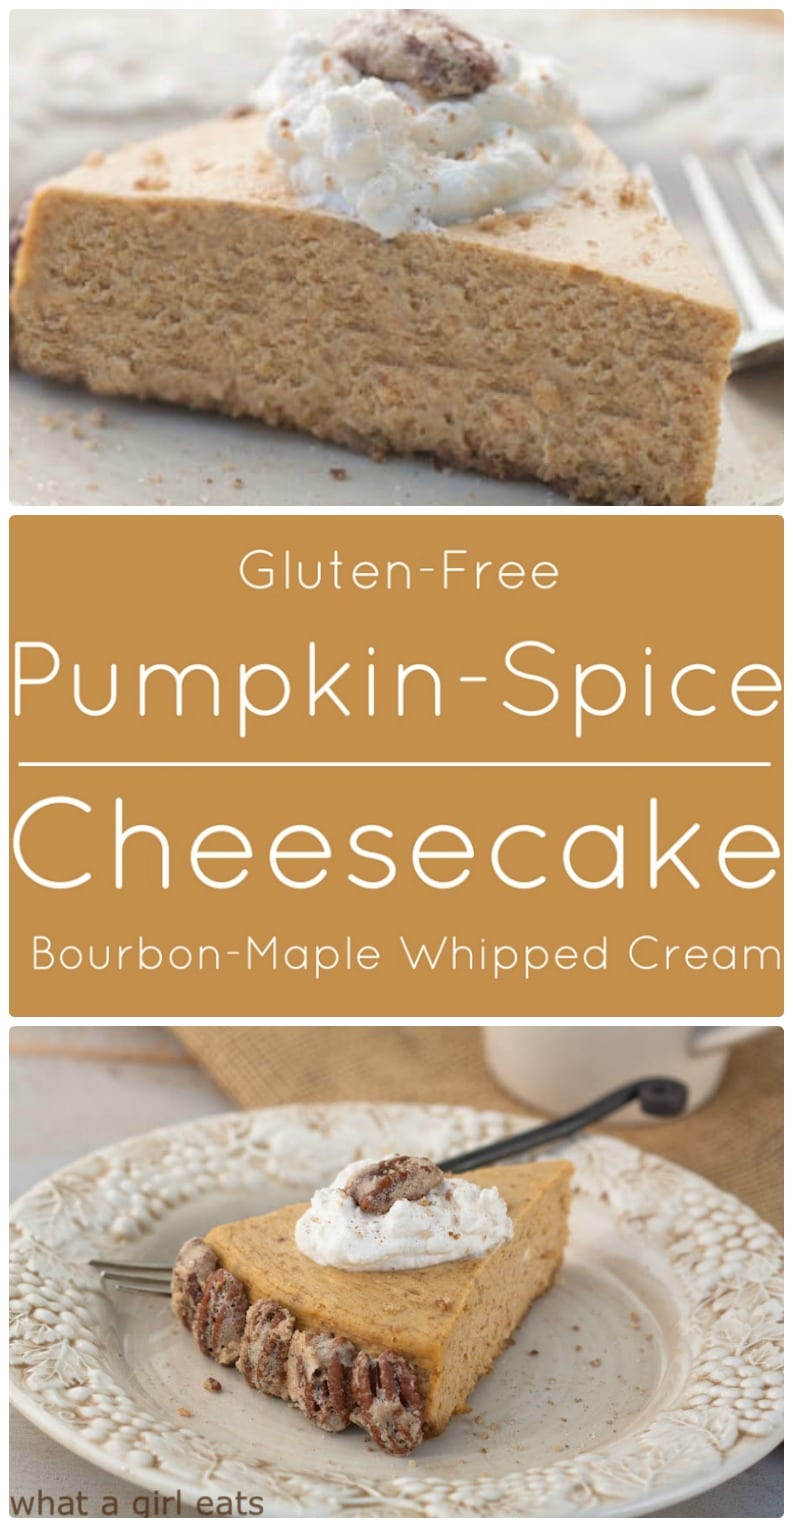 Gluten-free Pumpkin Spice Cheesecake with Bourbon-Maple Whipped Cream.